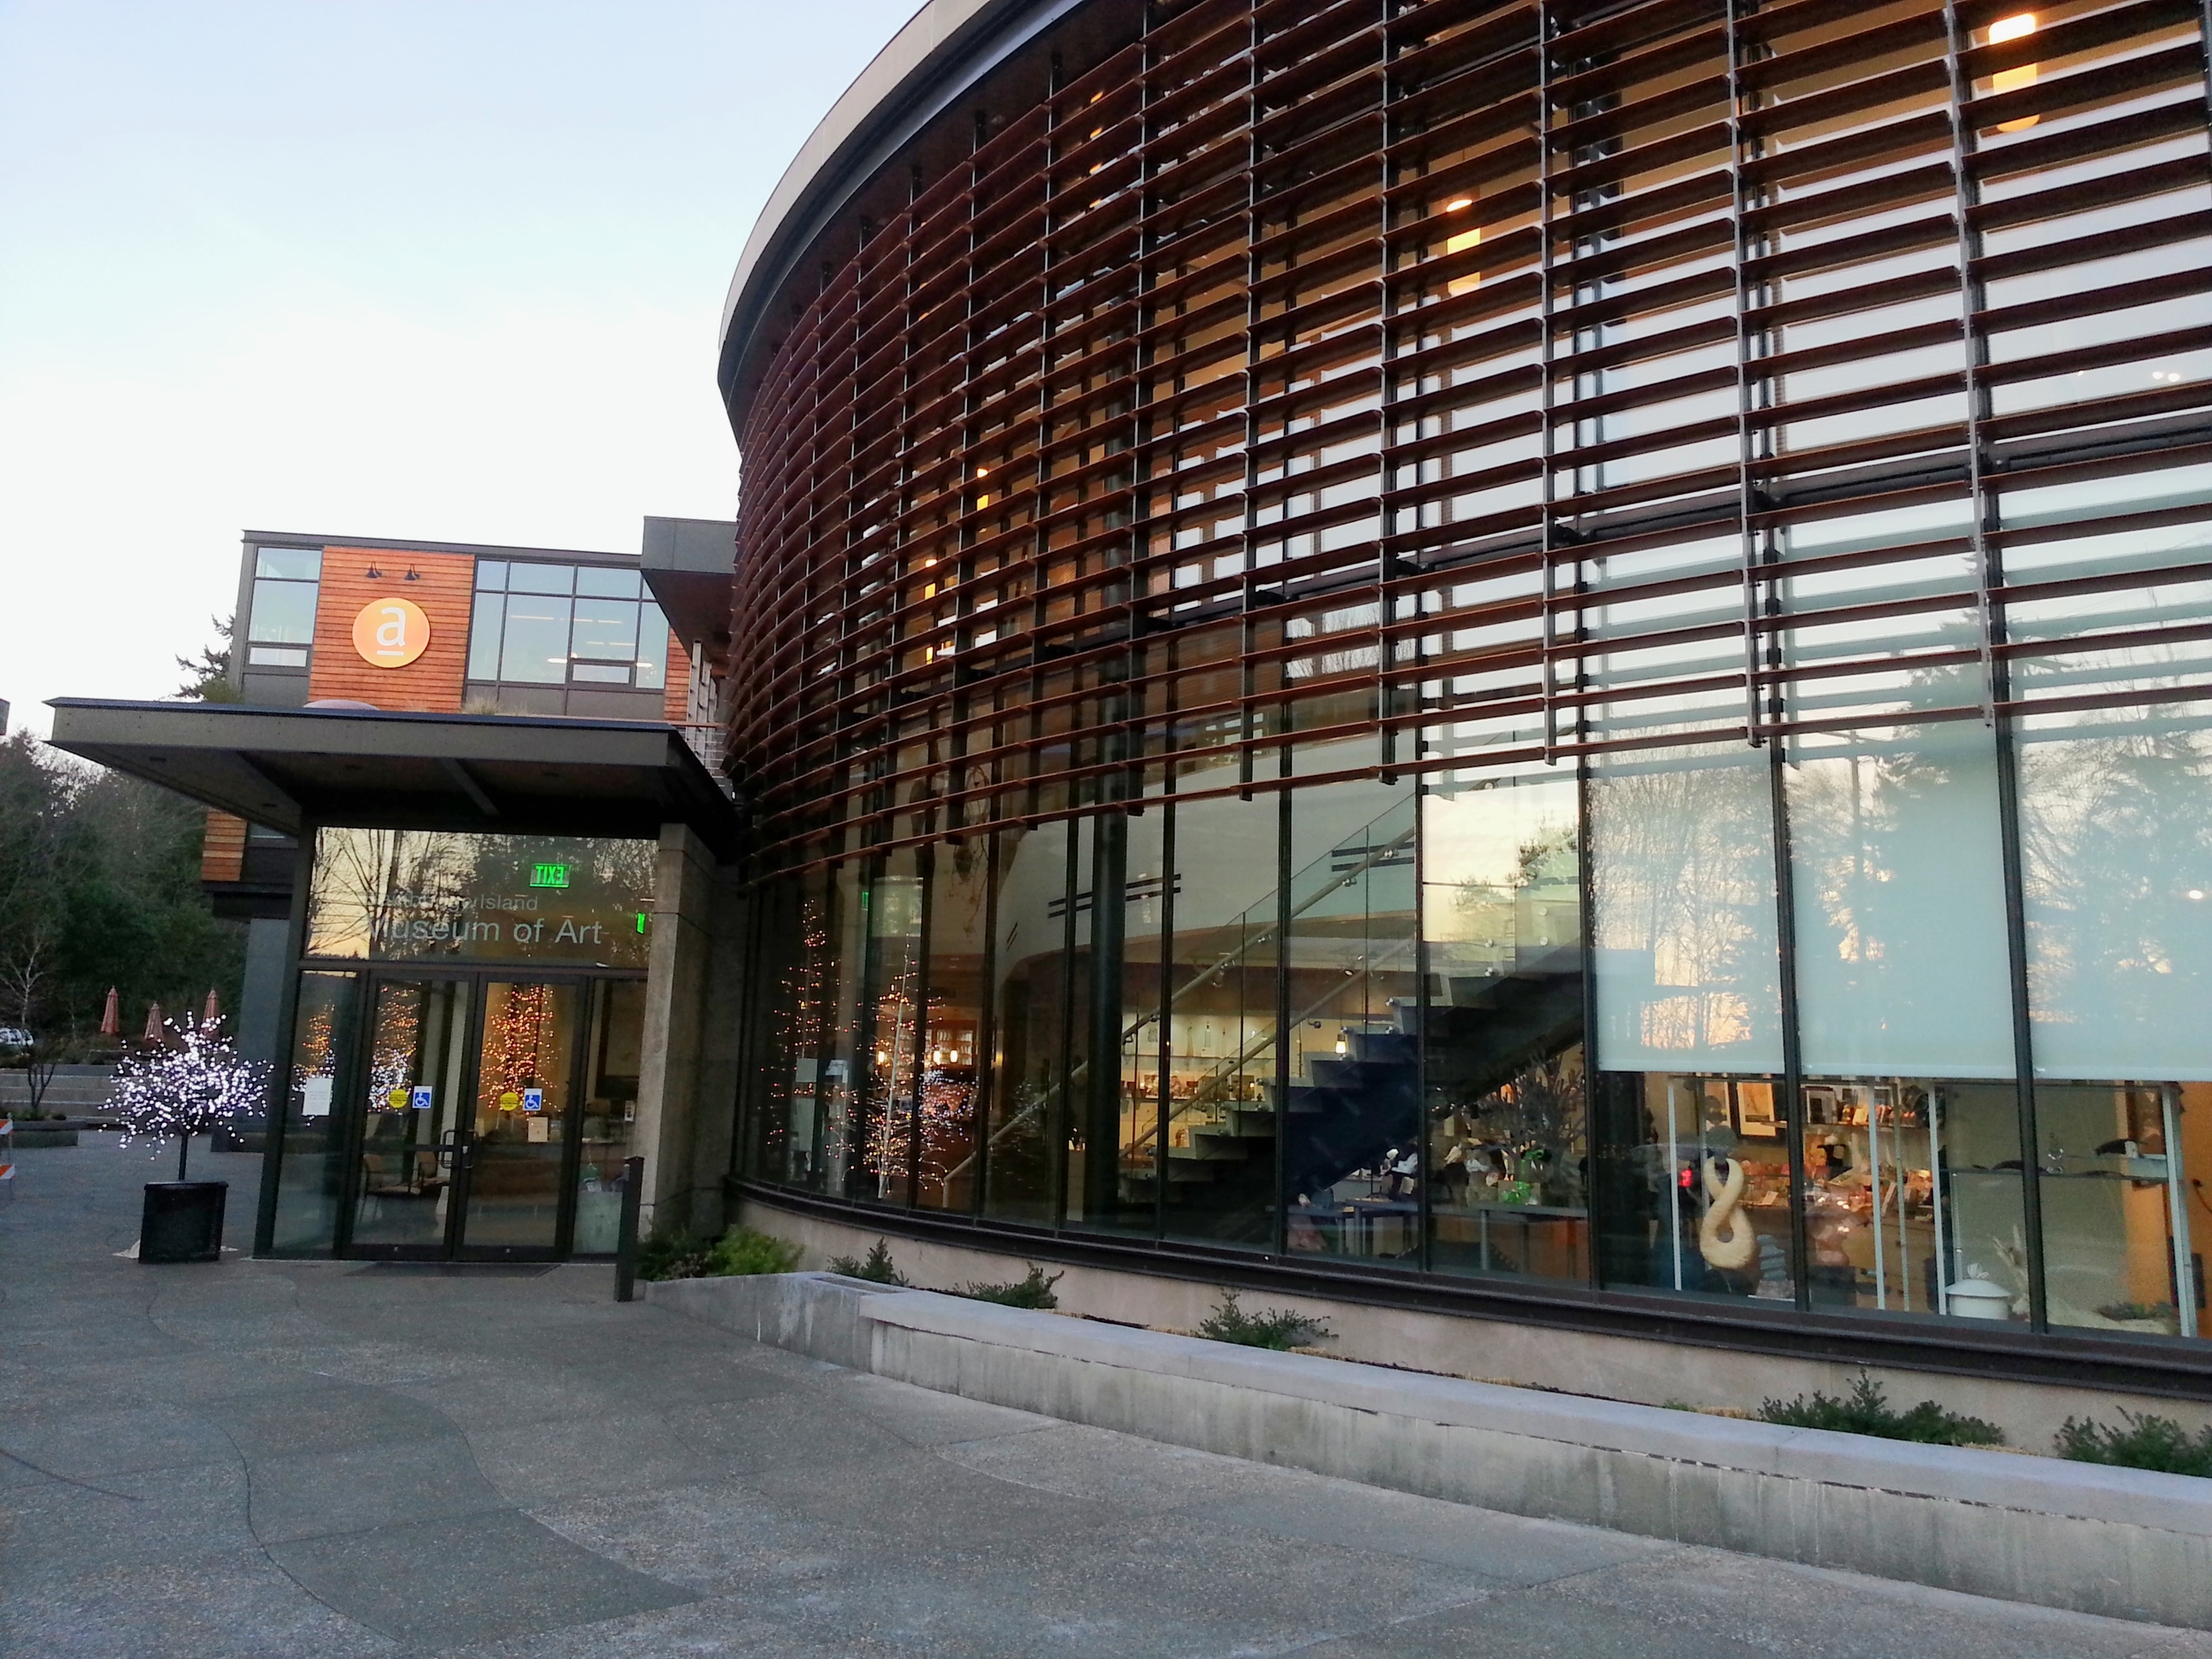 Bainbridge Island Museum of Art - Coates Design Architects